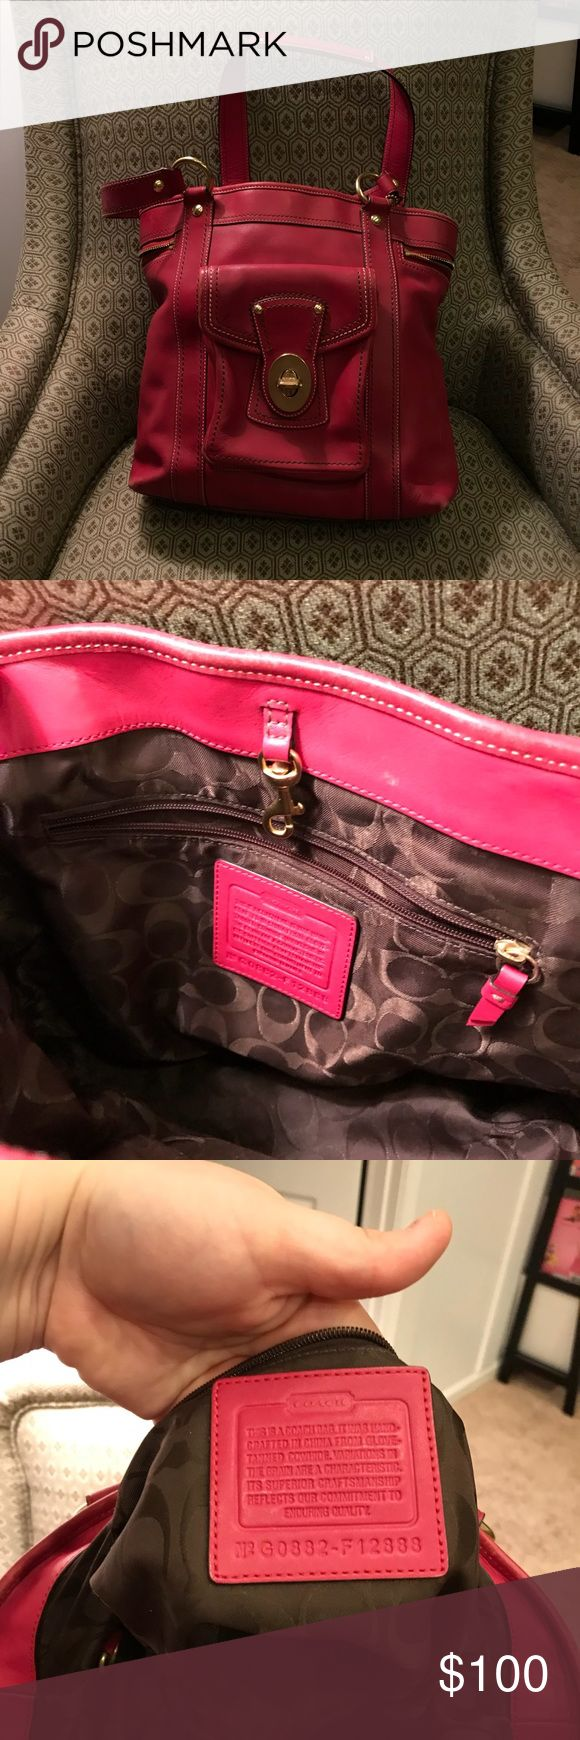 COACH LEGACY GIGI LEATHER TOTE COACH LEGACY GIGI WHISKEY LEATHER TOTE SHOULDER BAG, gently used! Coach Bags Totes